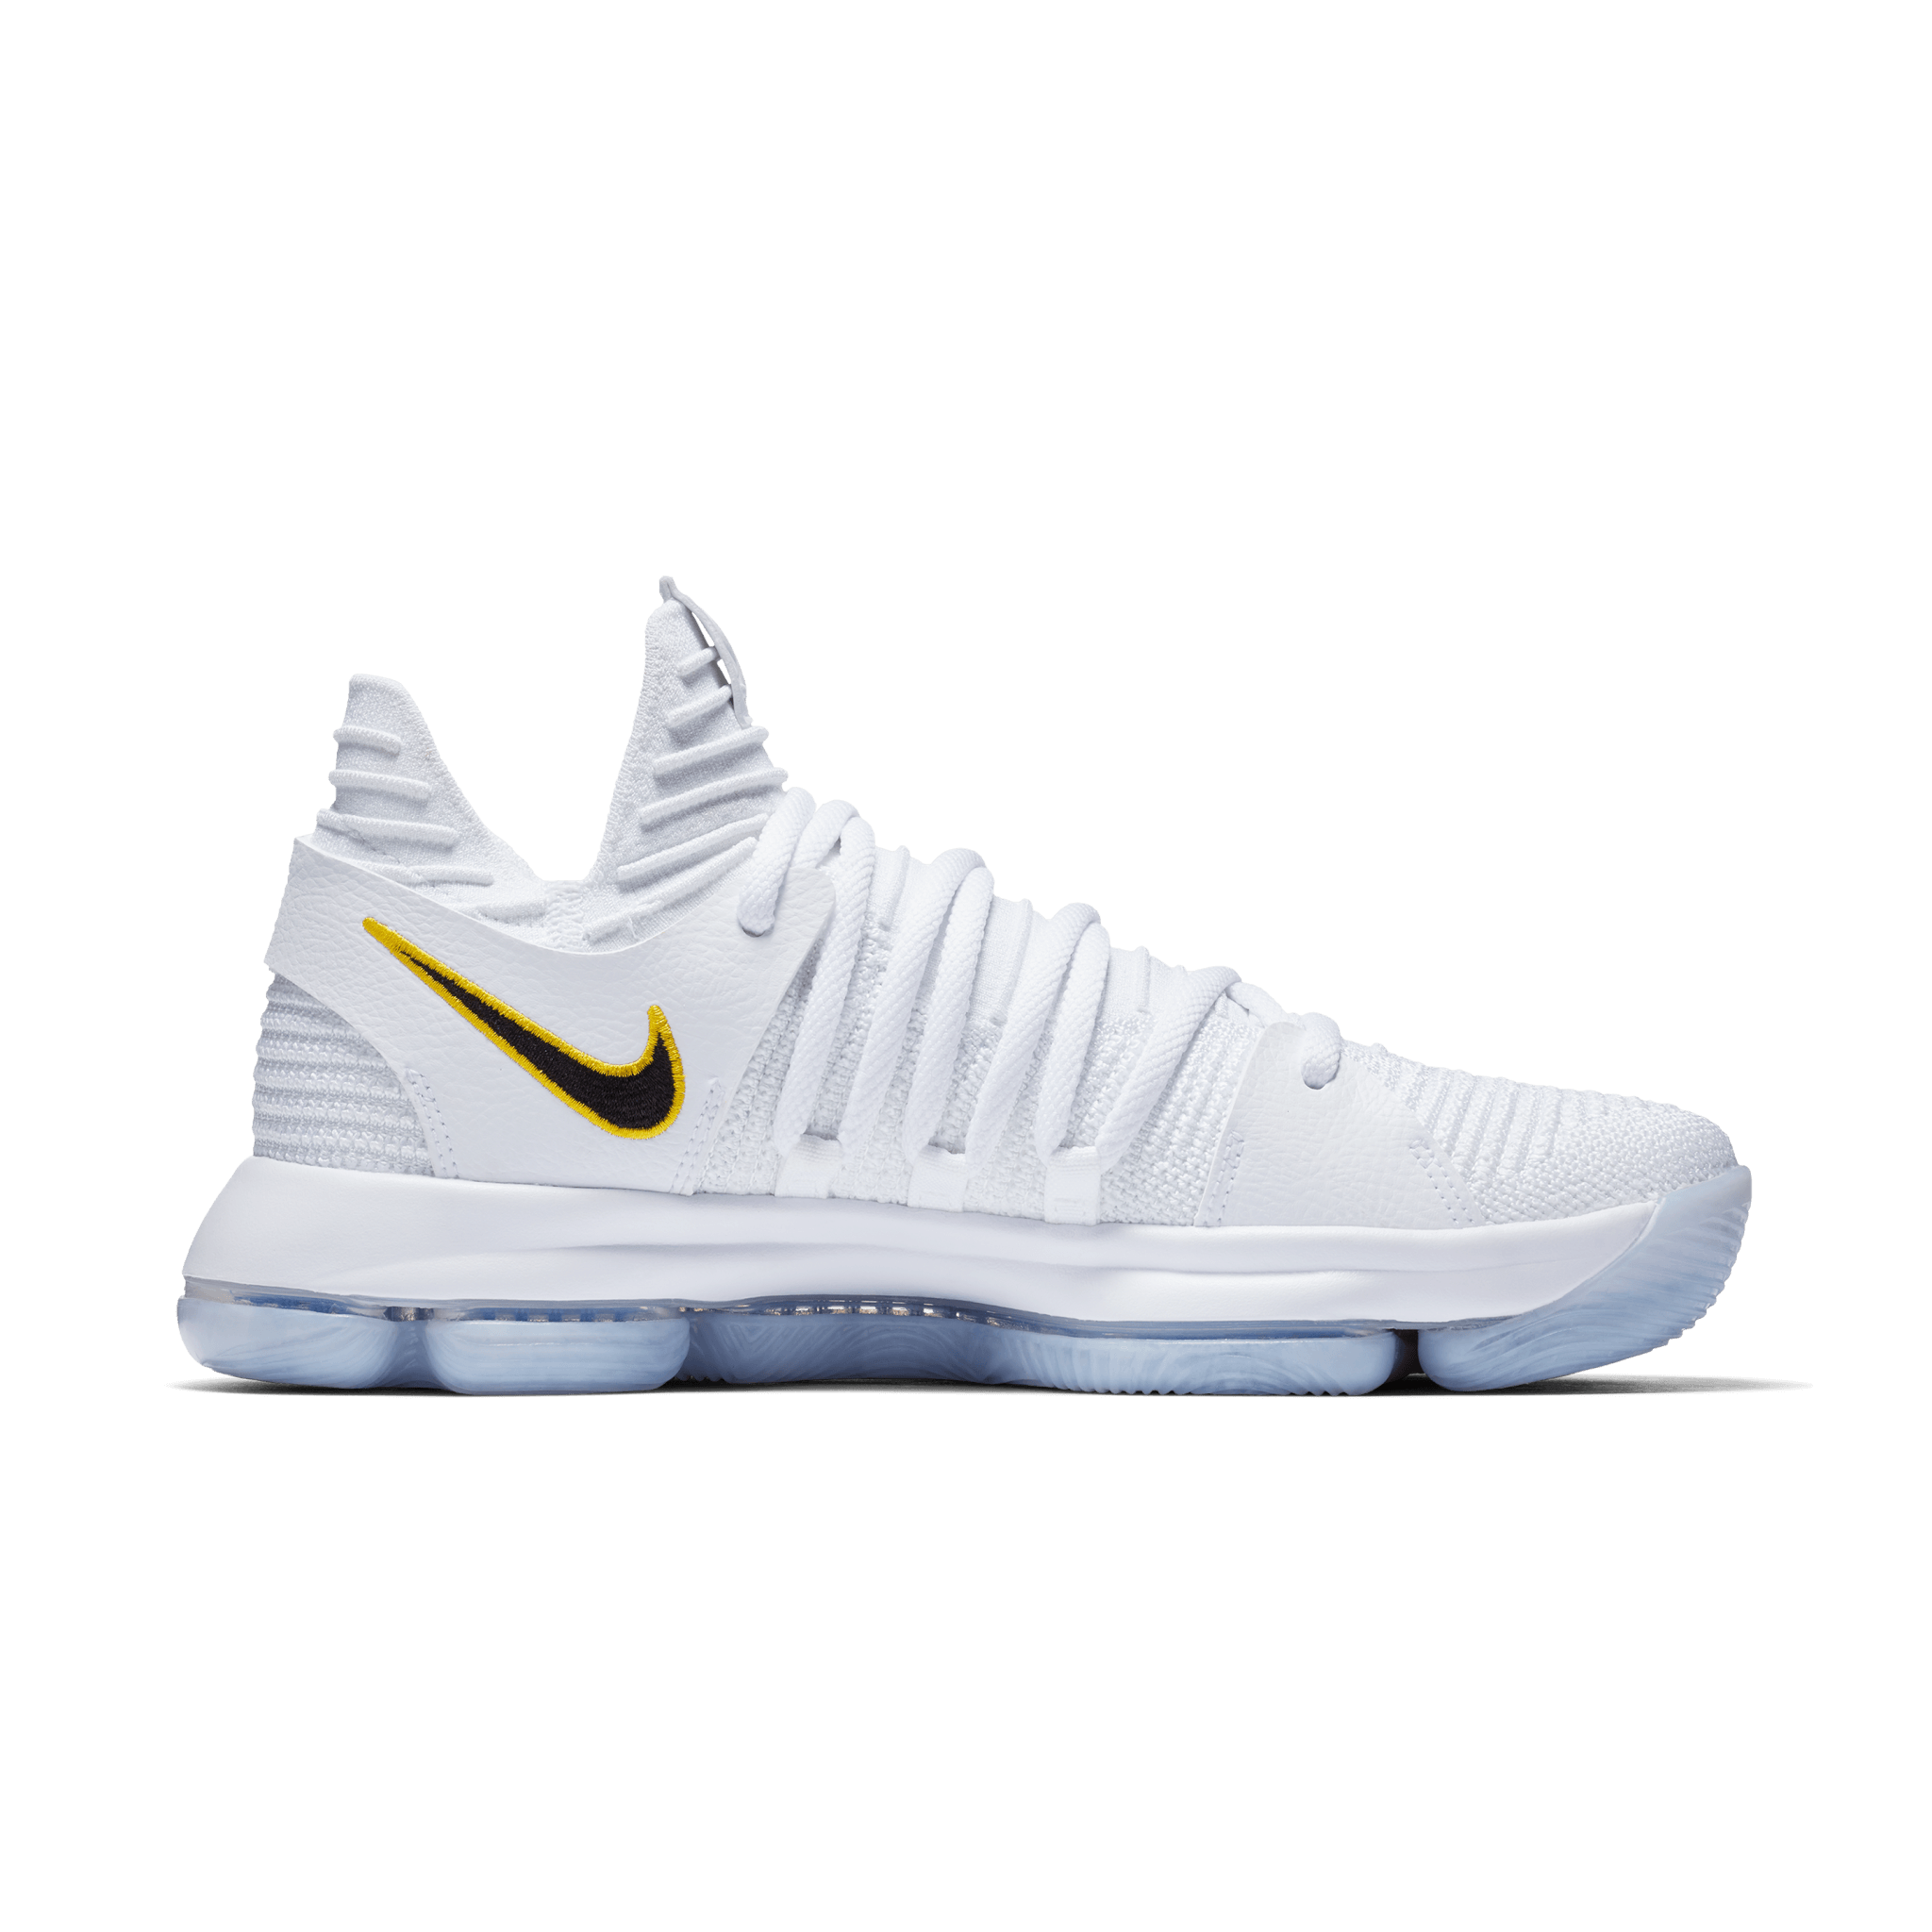 0a10acdd1c75 Nike KD 10 Performance Review